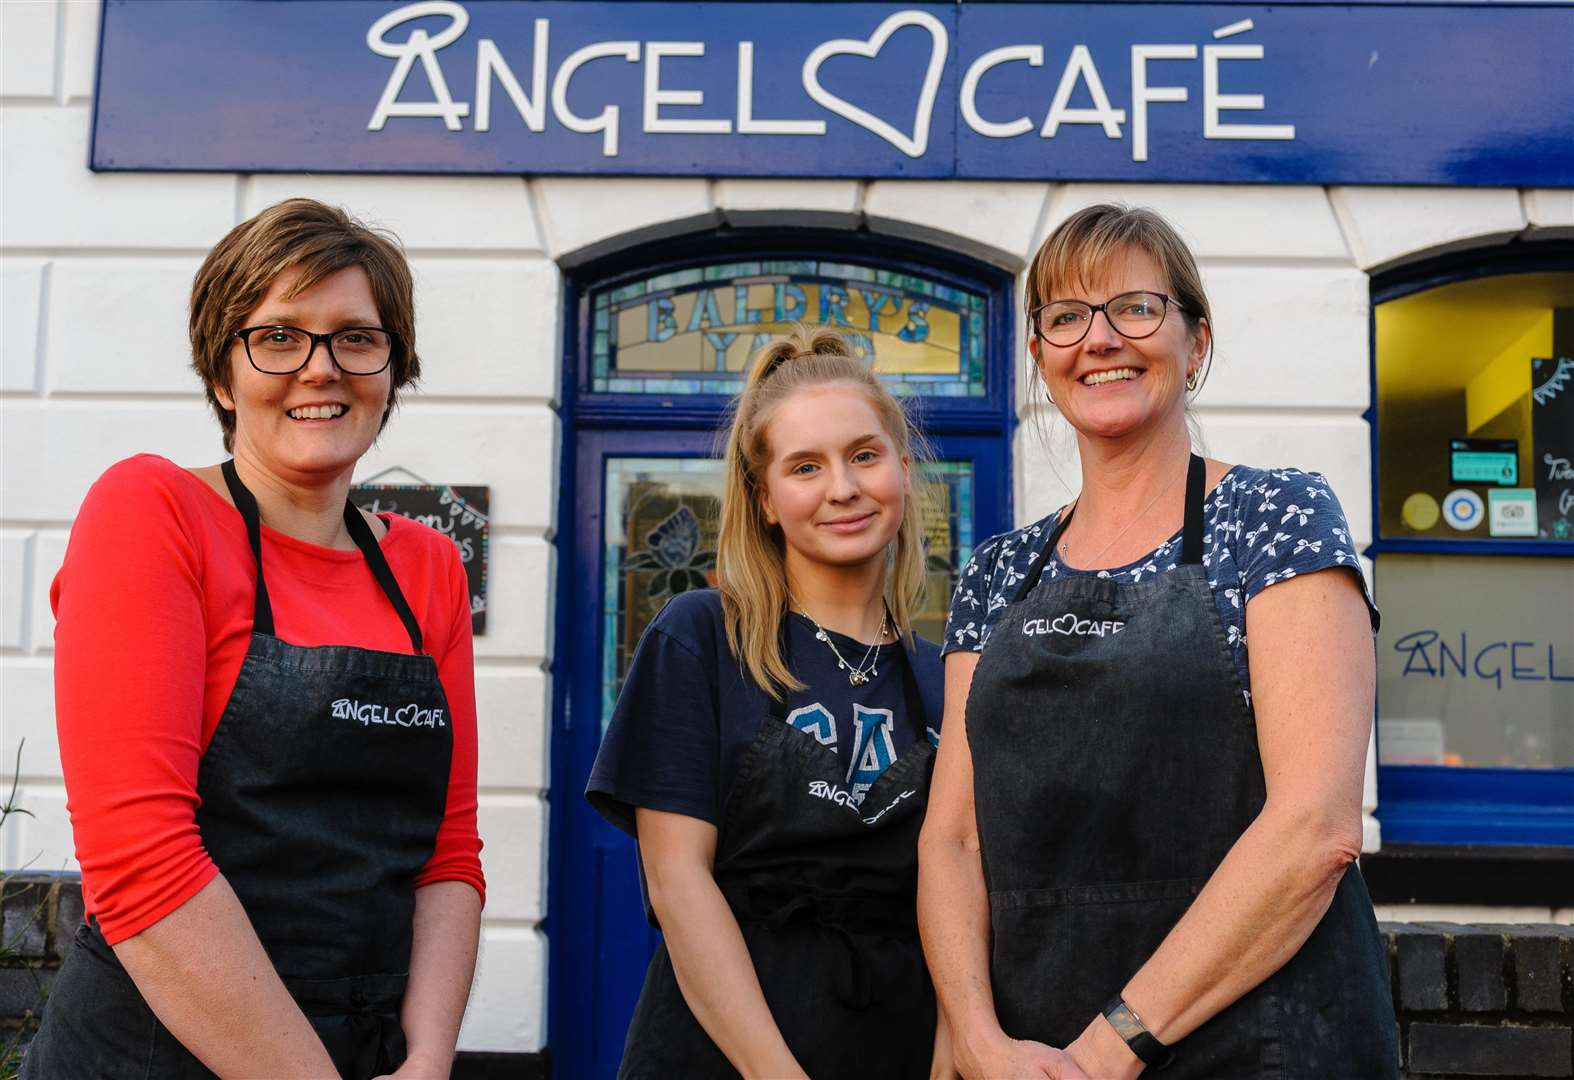 New Angel Cafe owners plan winter warmer menu